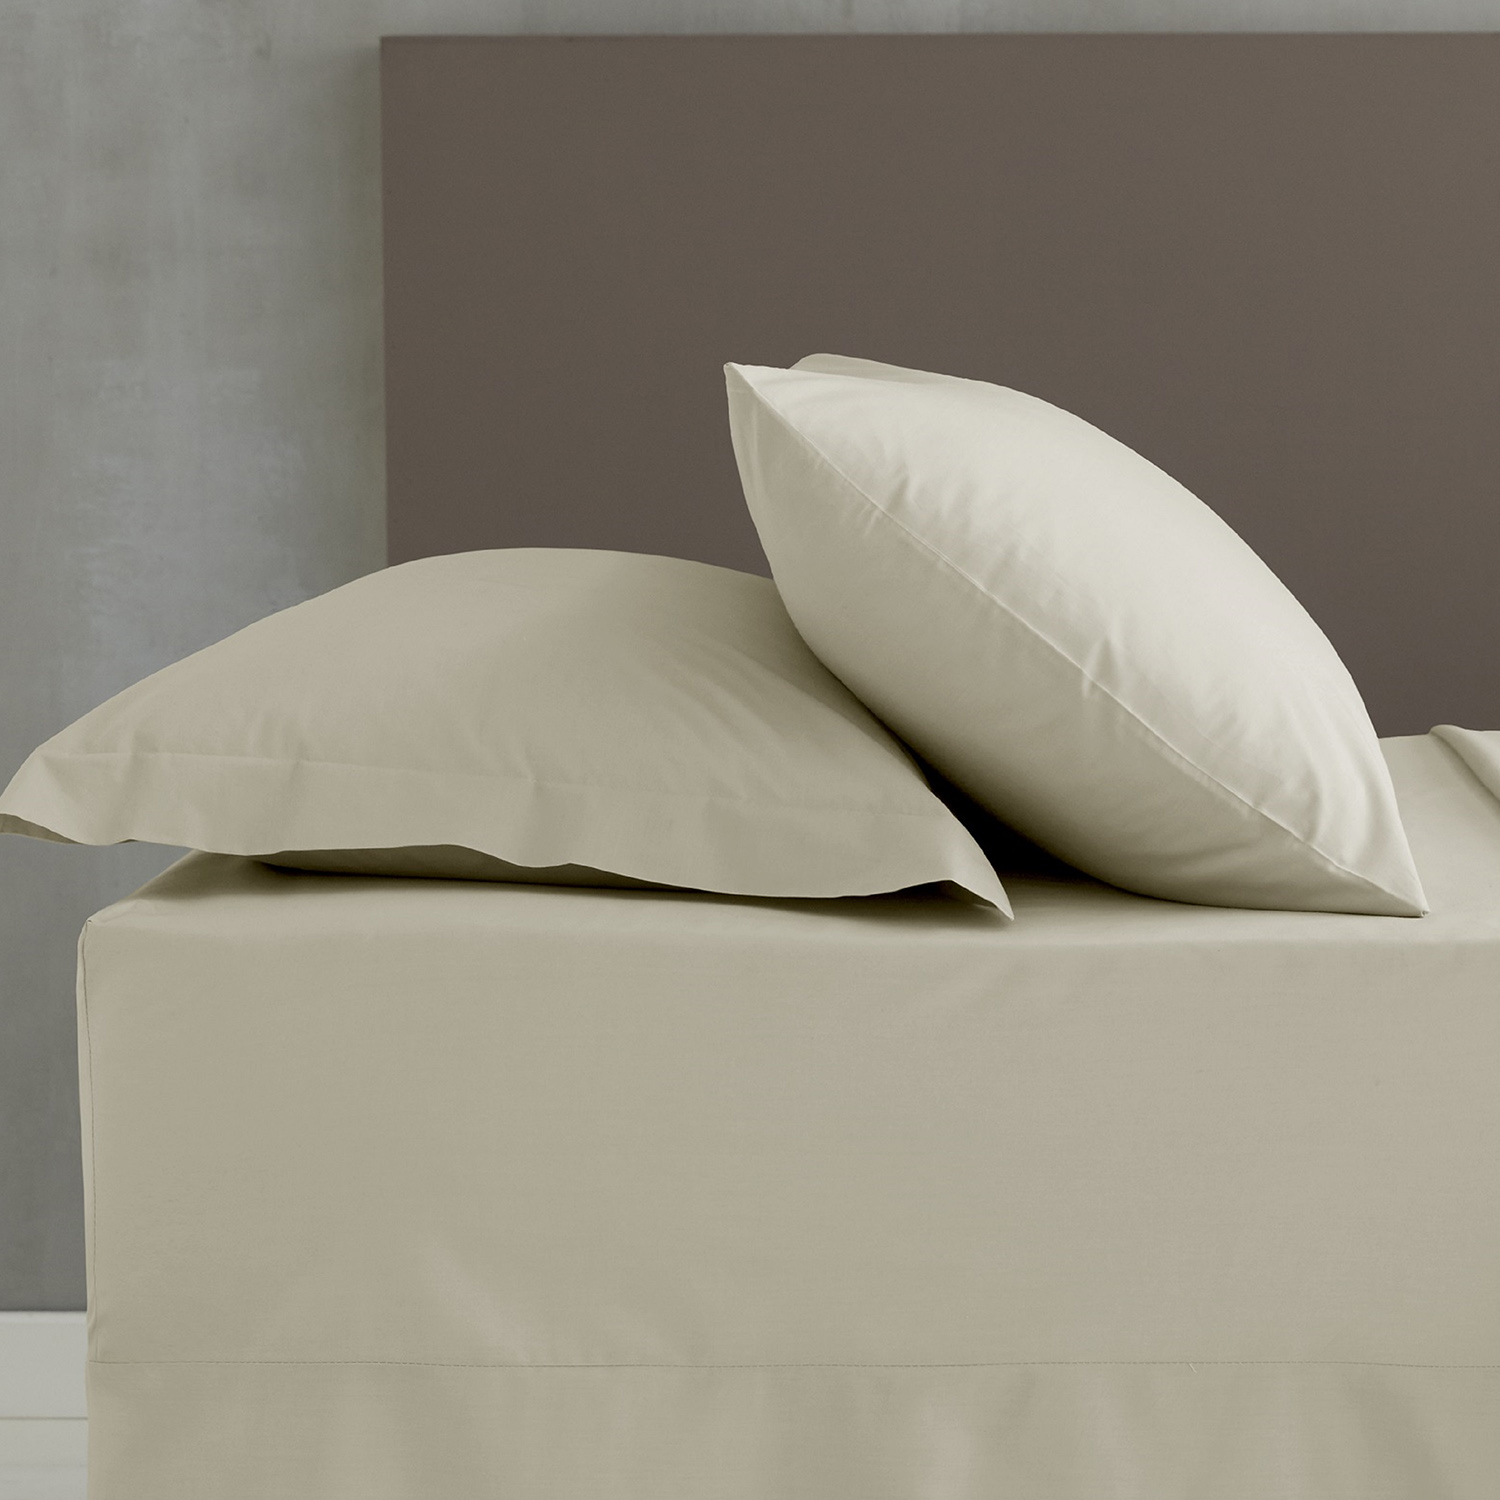 Lençol de Baixo Creme So Soft Percale